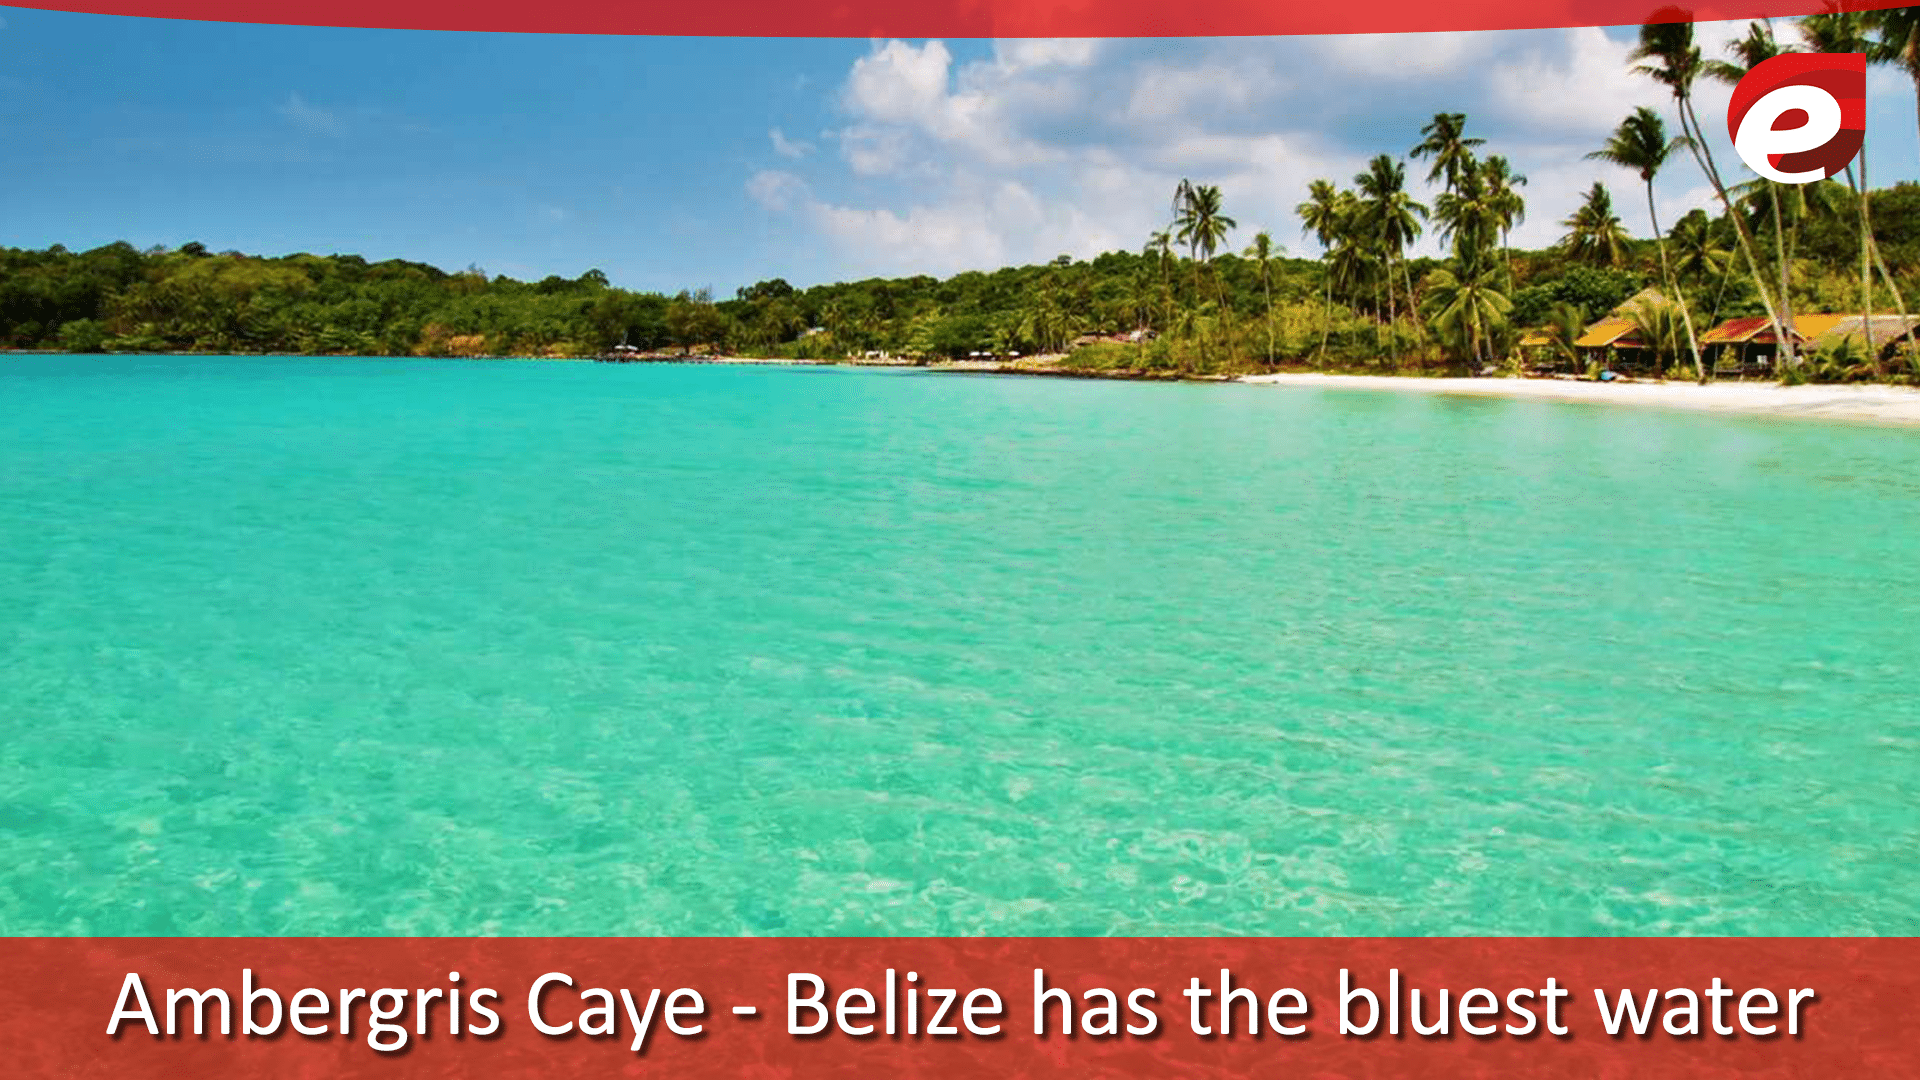 Bluest water in the world- Ambergris caye